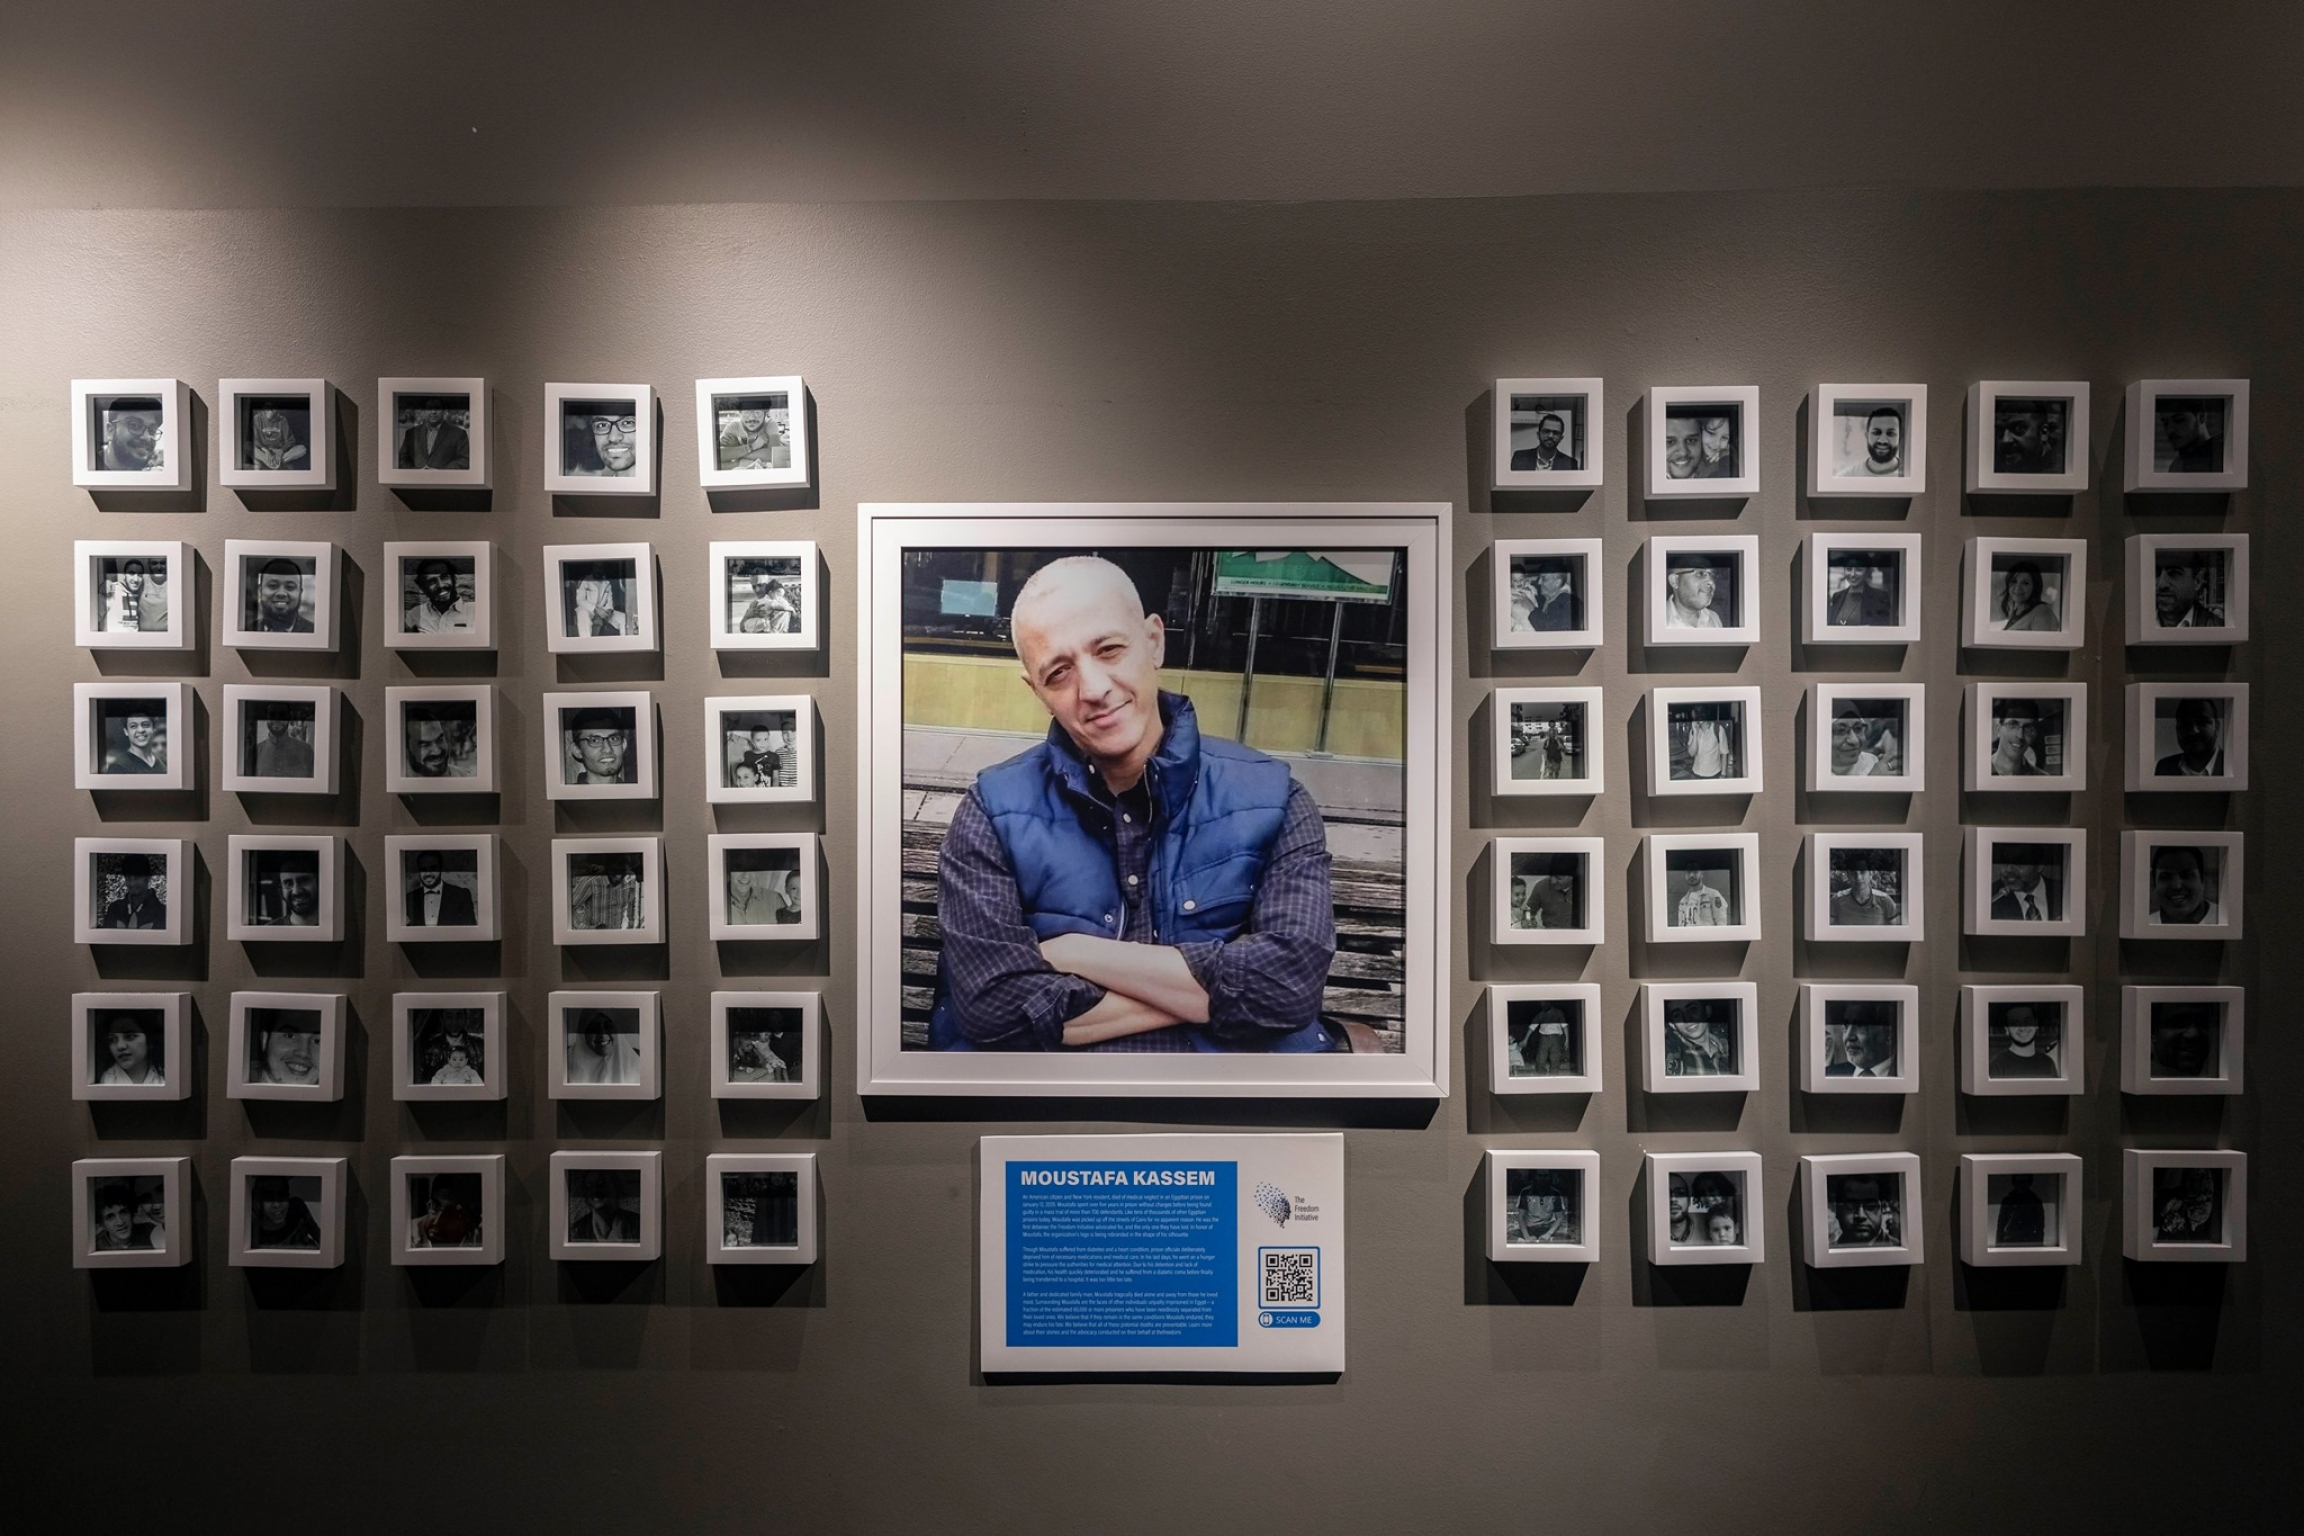 A memorial shows a photo of a man surrounded by several other frames in a gallery.